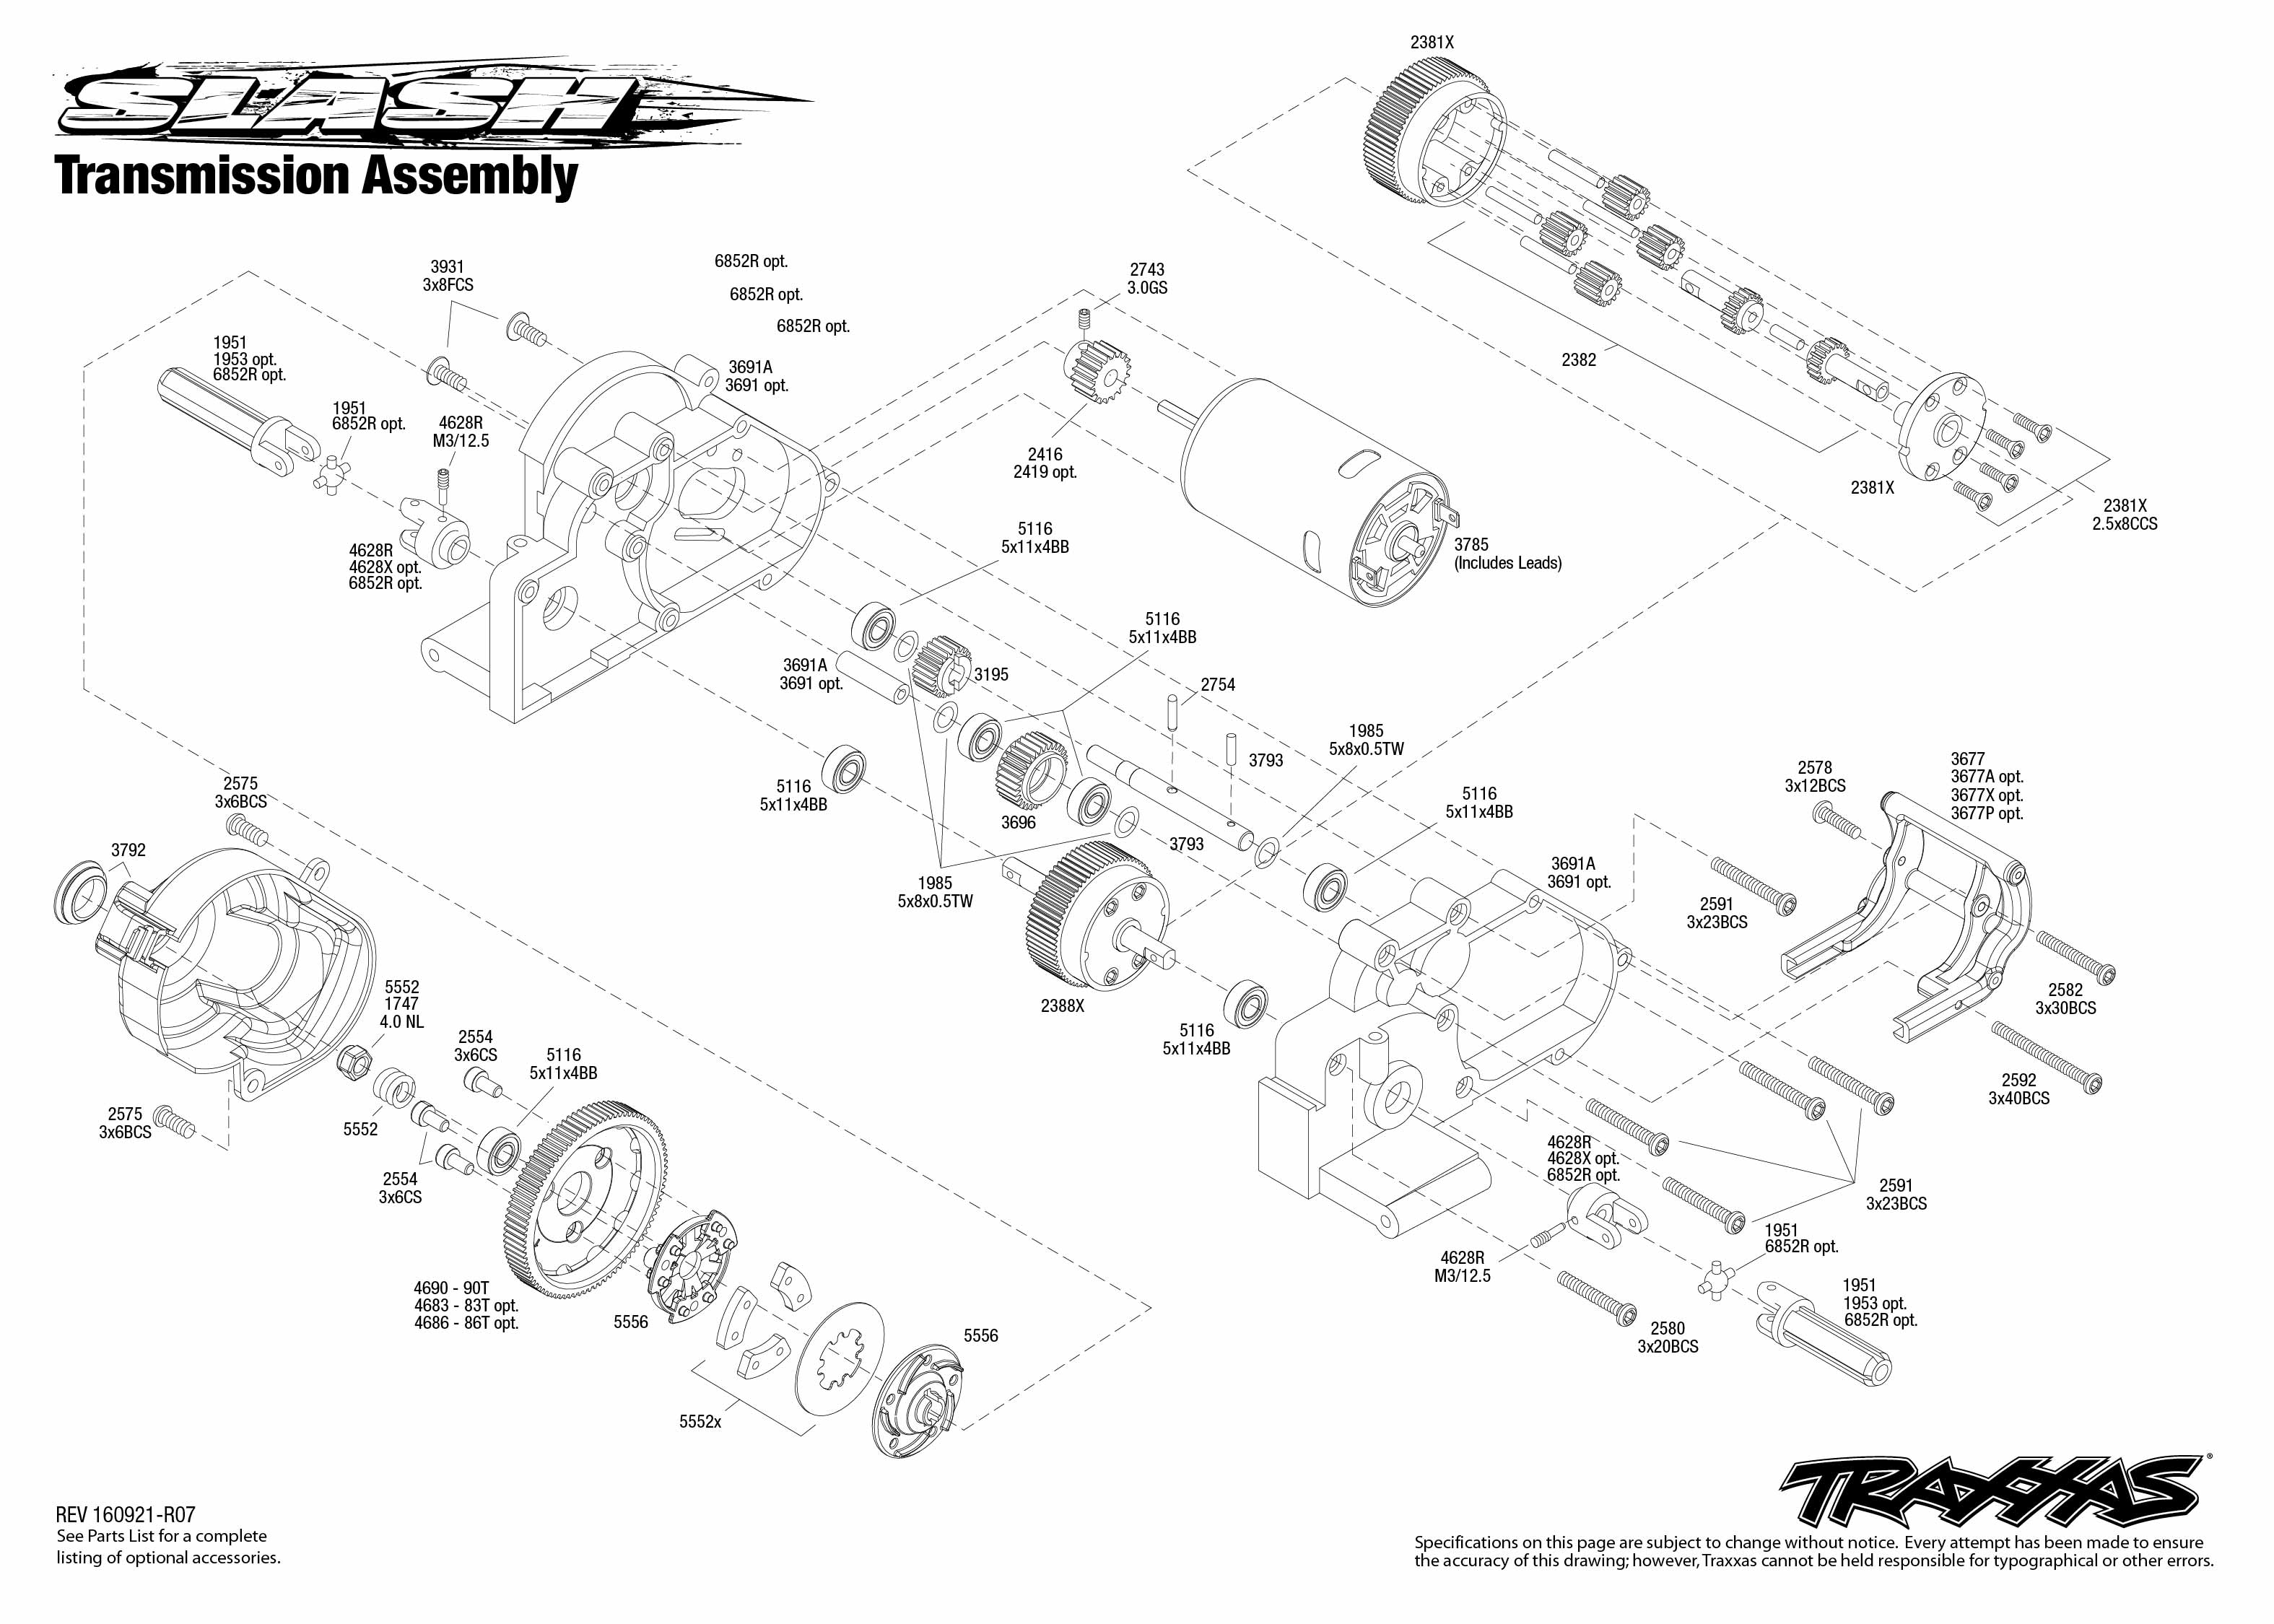 Traxxas Esc Wiring Diagram 4x4 - Simple Wiring Diagram Site on futaba receiver compatibility, futaba receivers 2 4ghz, futaba receiver wiring, futaba r607fs receiver, futaba 617 receiver,